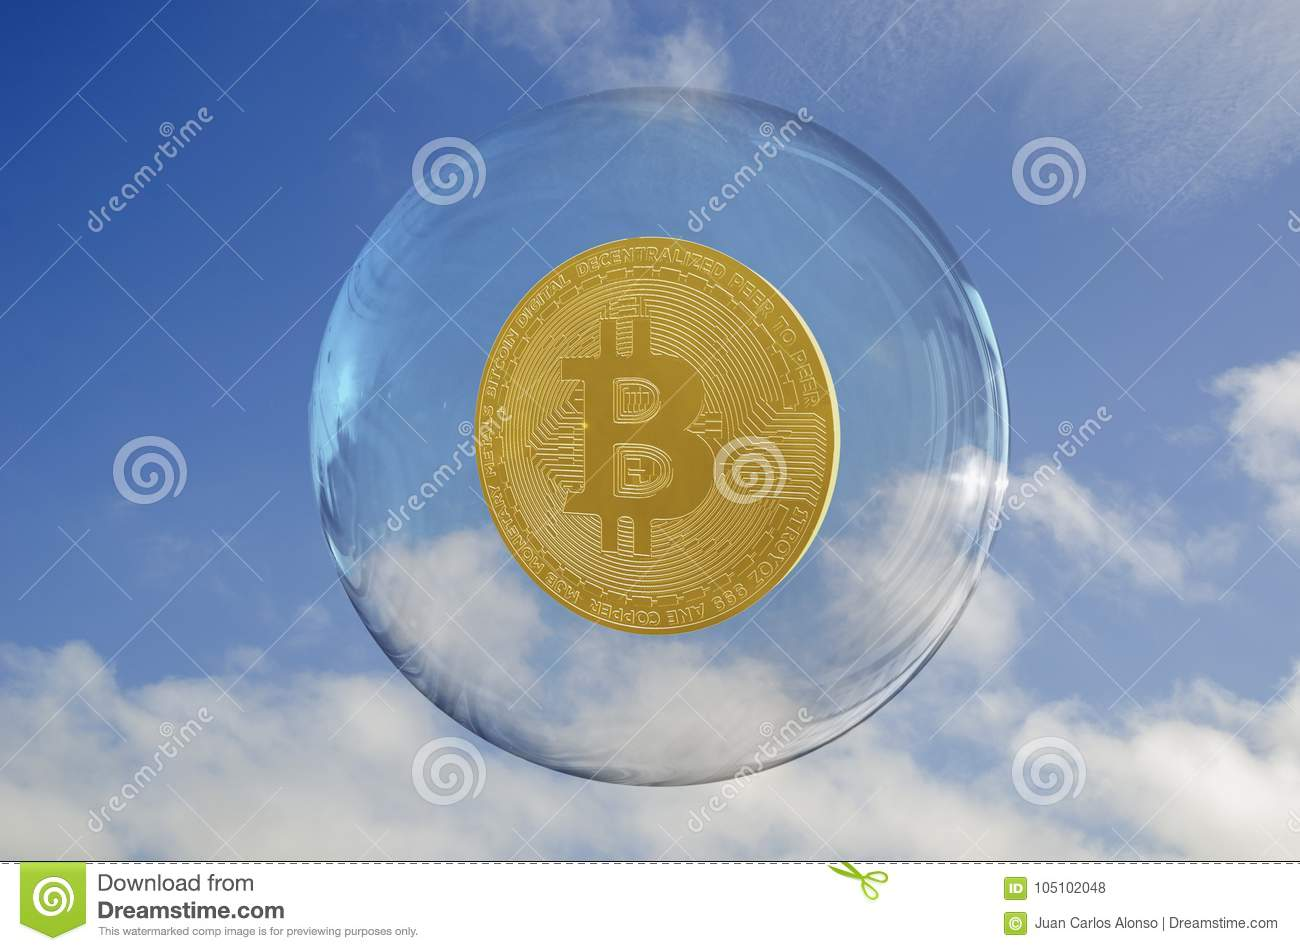 Bitcoin inside a bubble and a sky clouds background.